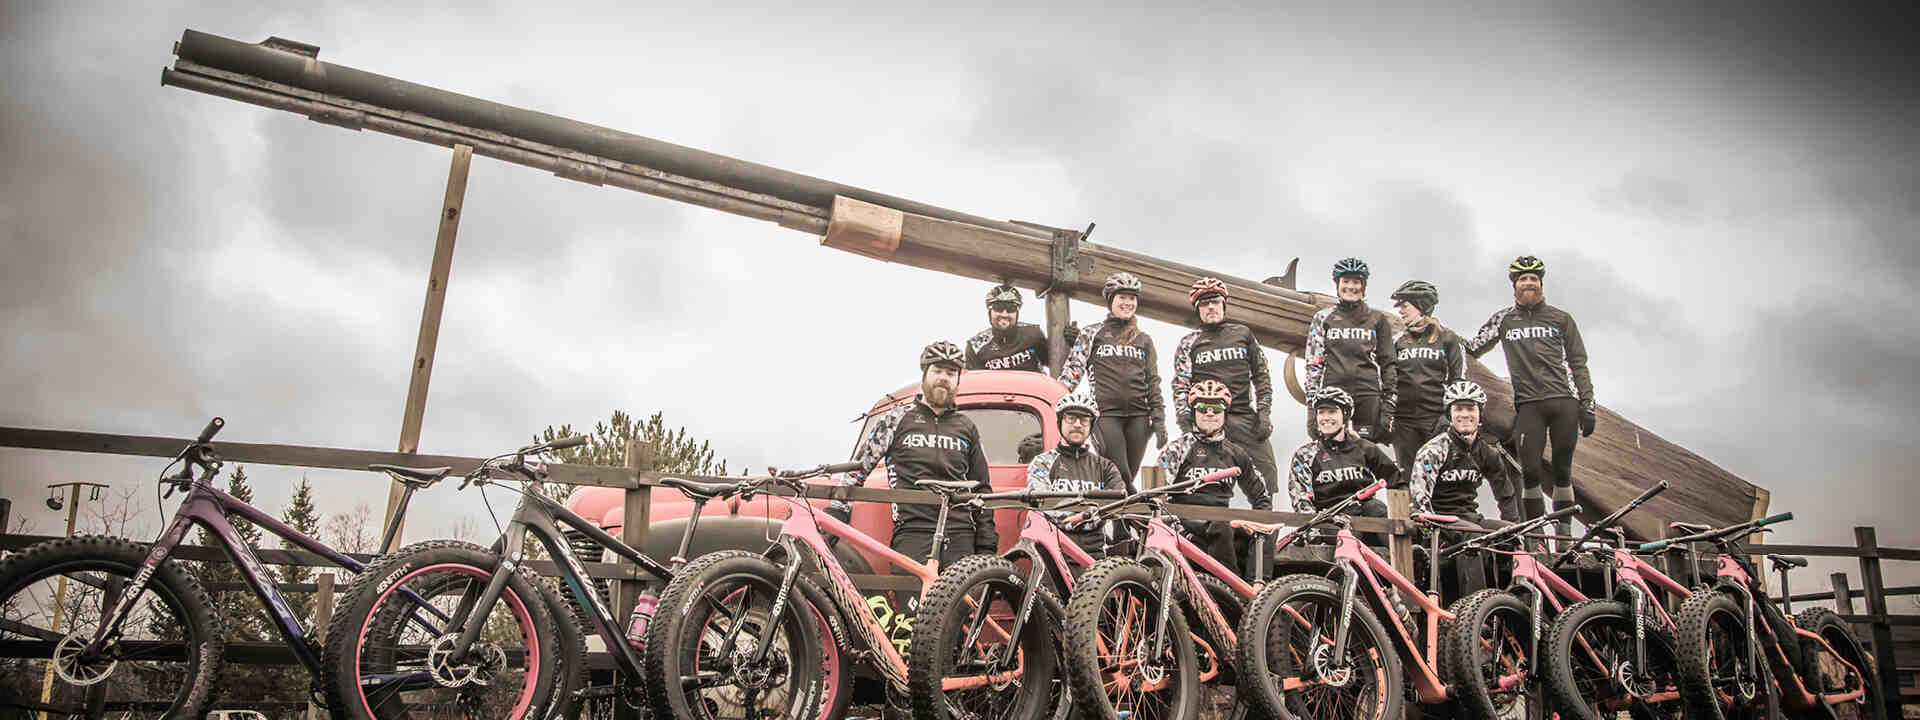 45Nrth team riders pose beside big gun